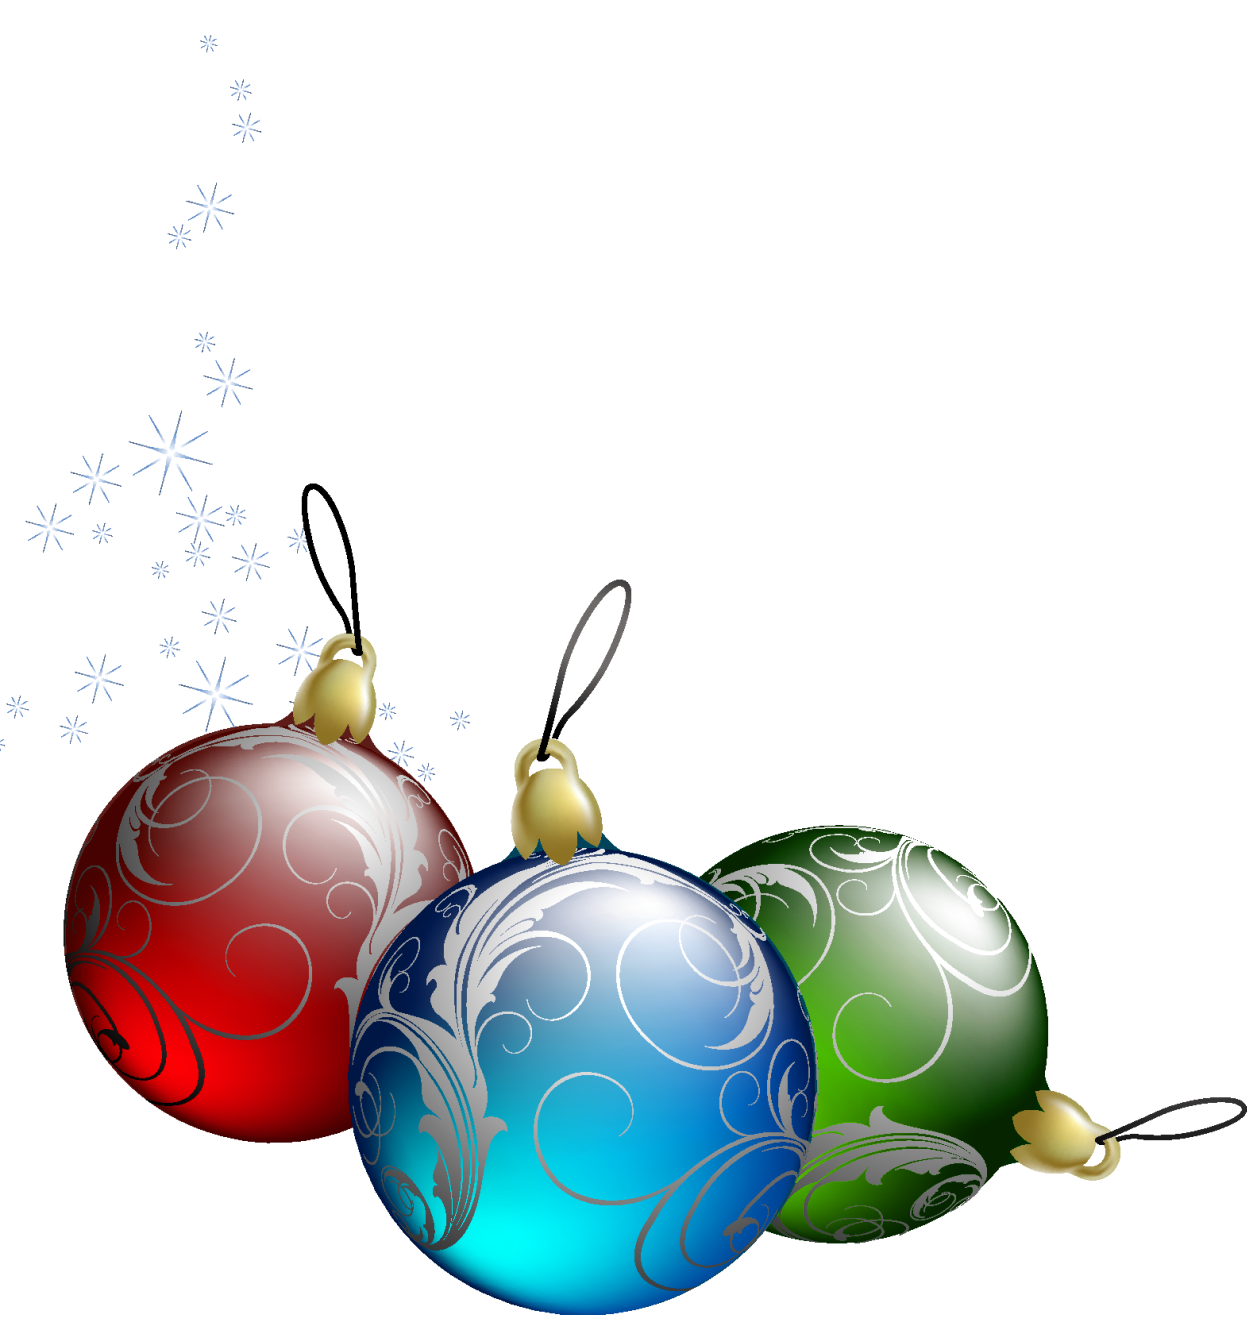 Christmas ornaments clipart free images download Free Pictures On Christmas Ornaments, Download Free Clip Art, Free ... download